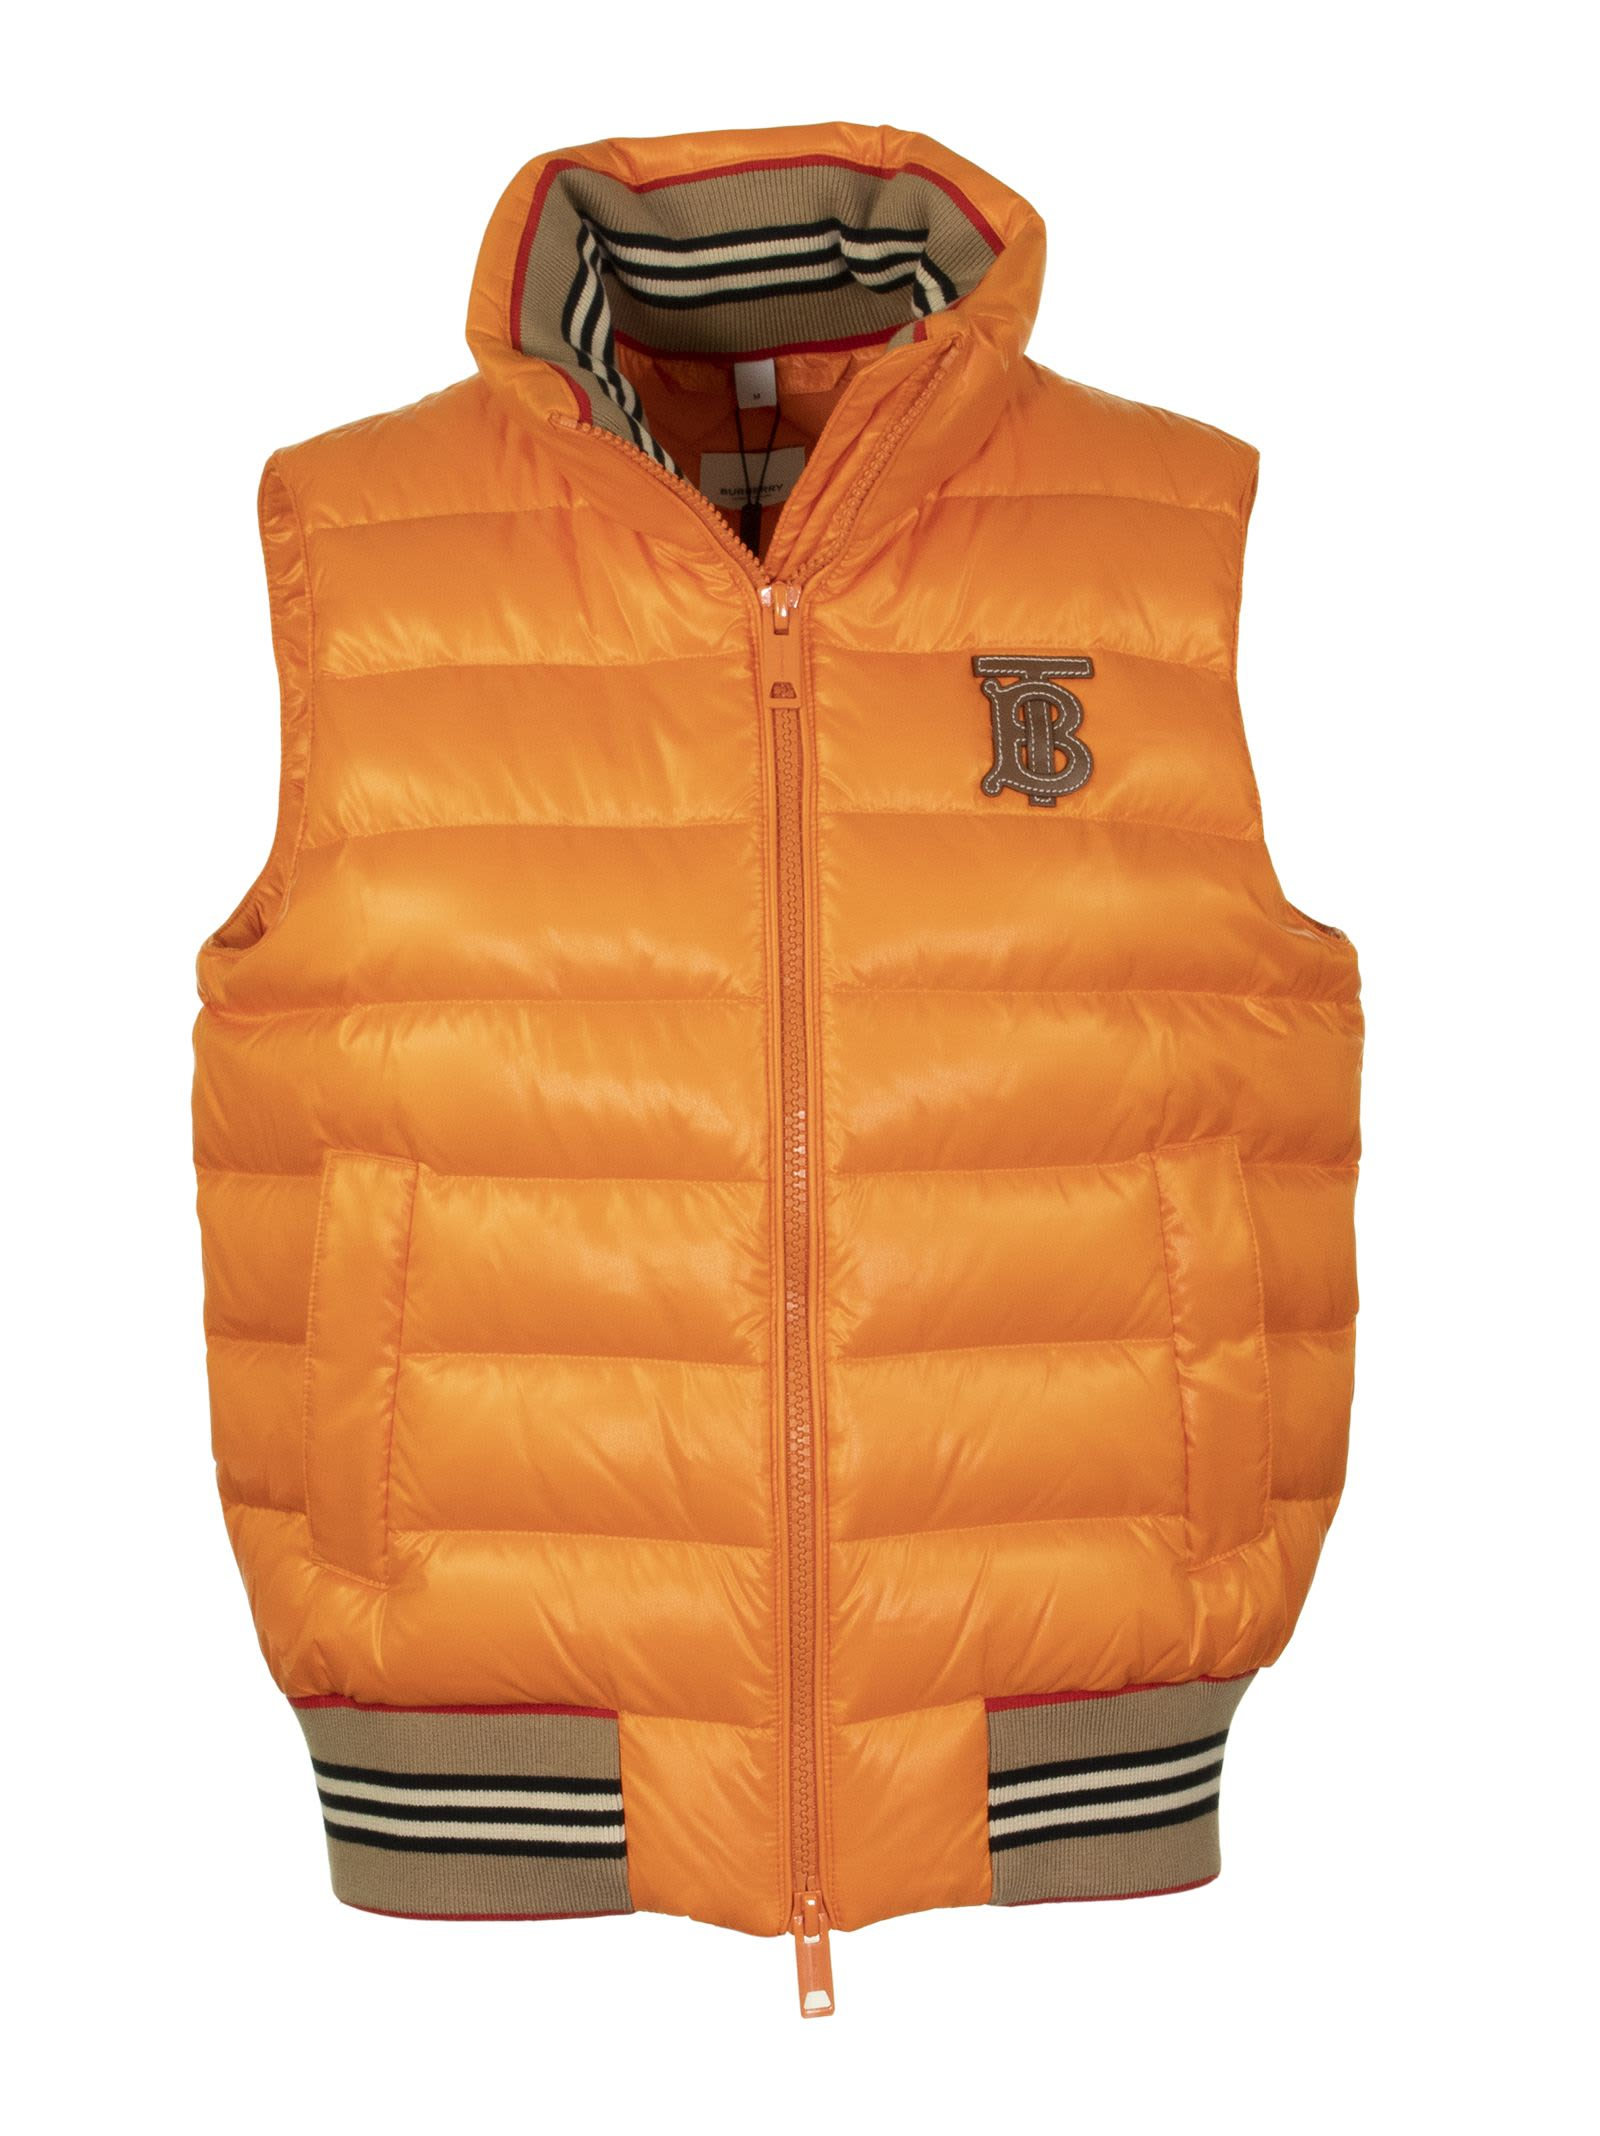 Burberry Hessle Orange